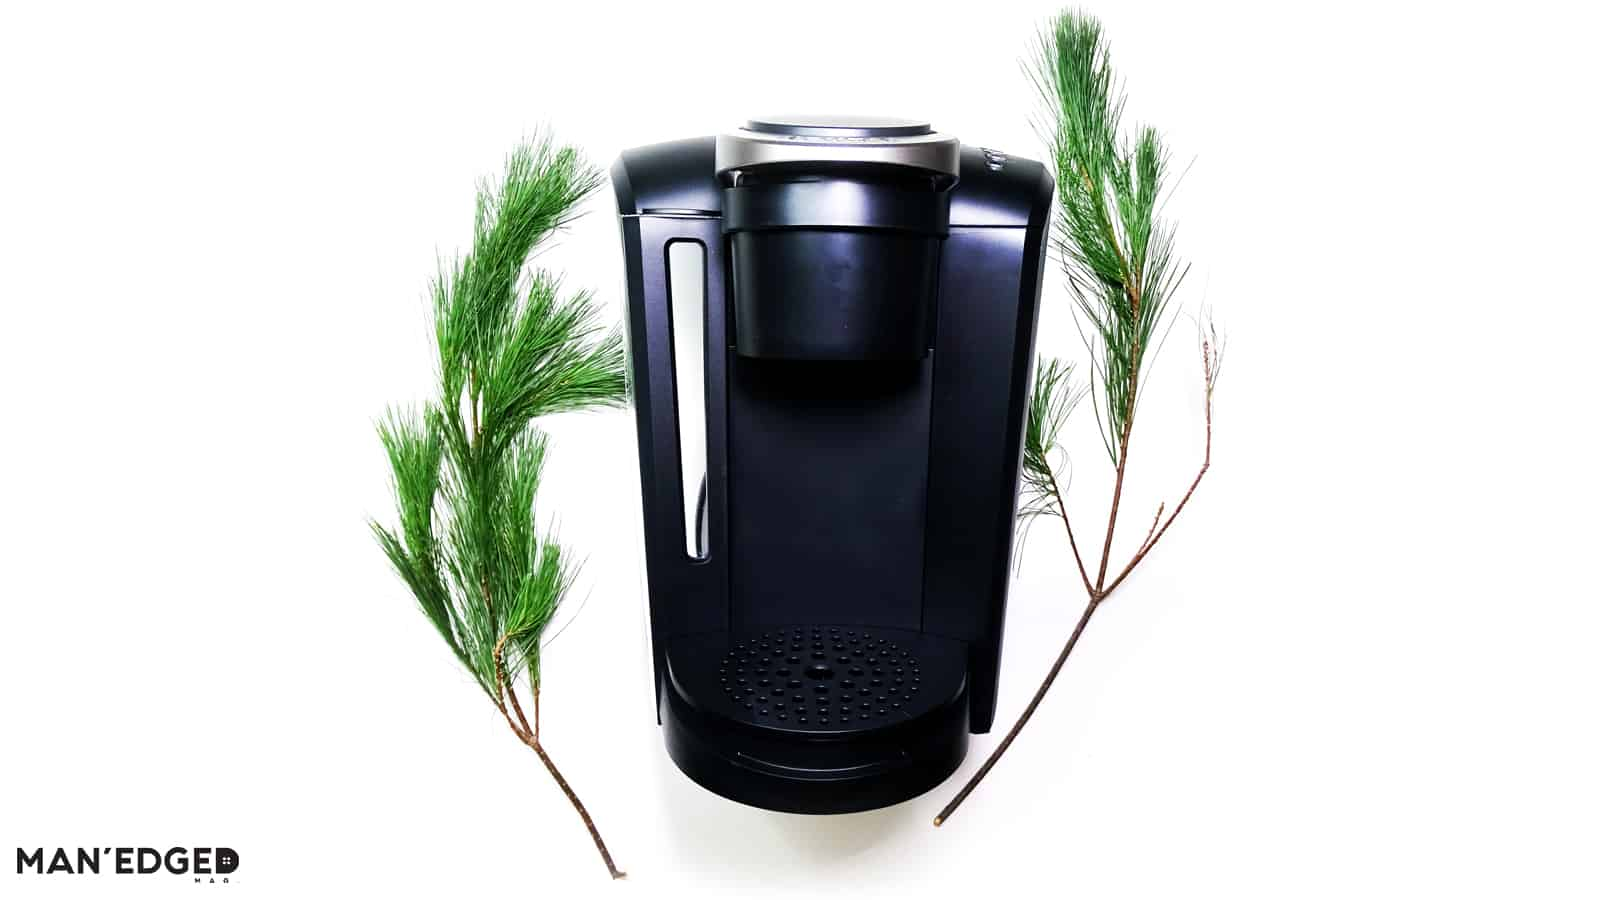 Keurig K Select Coffee Maker featured in gift ideas for the boyfriend or husband